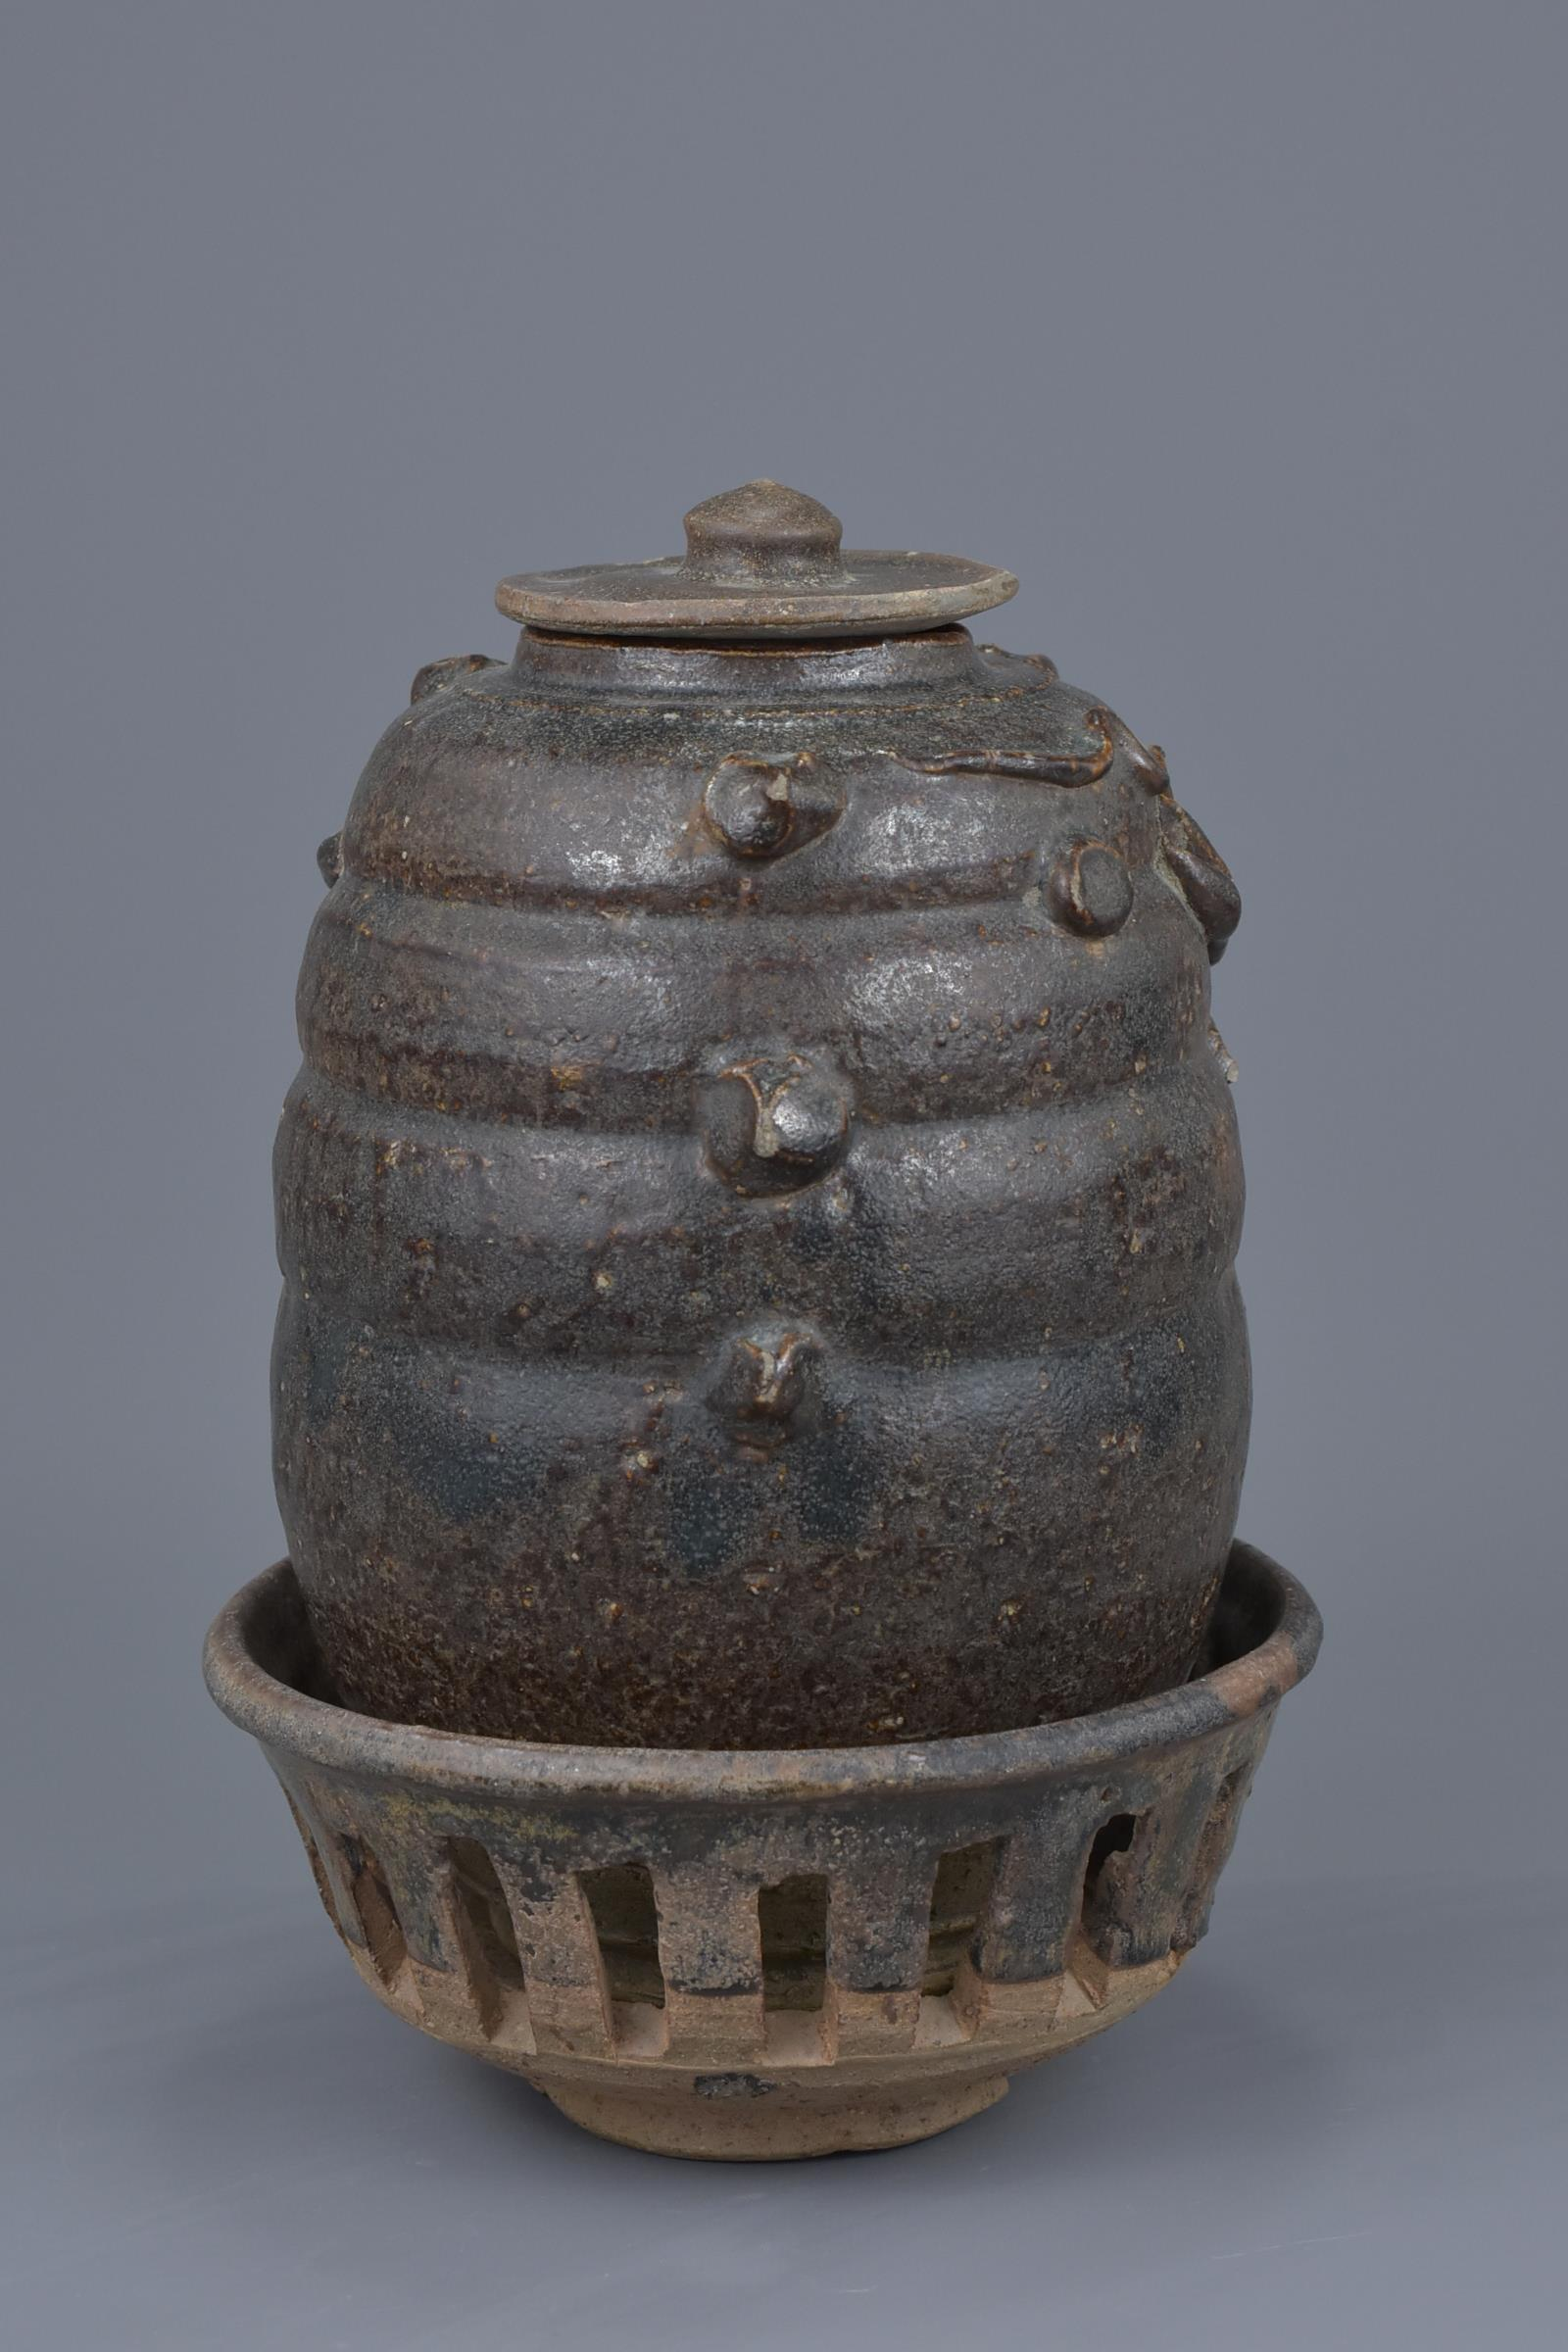 Lot 14 - A Rare Chinese Song Dynasty Dragon Jar with Stand & Cover